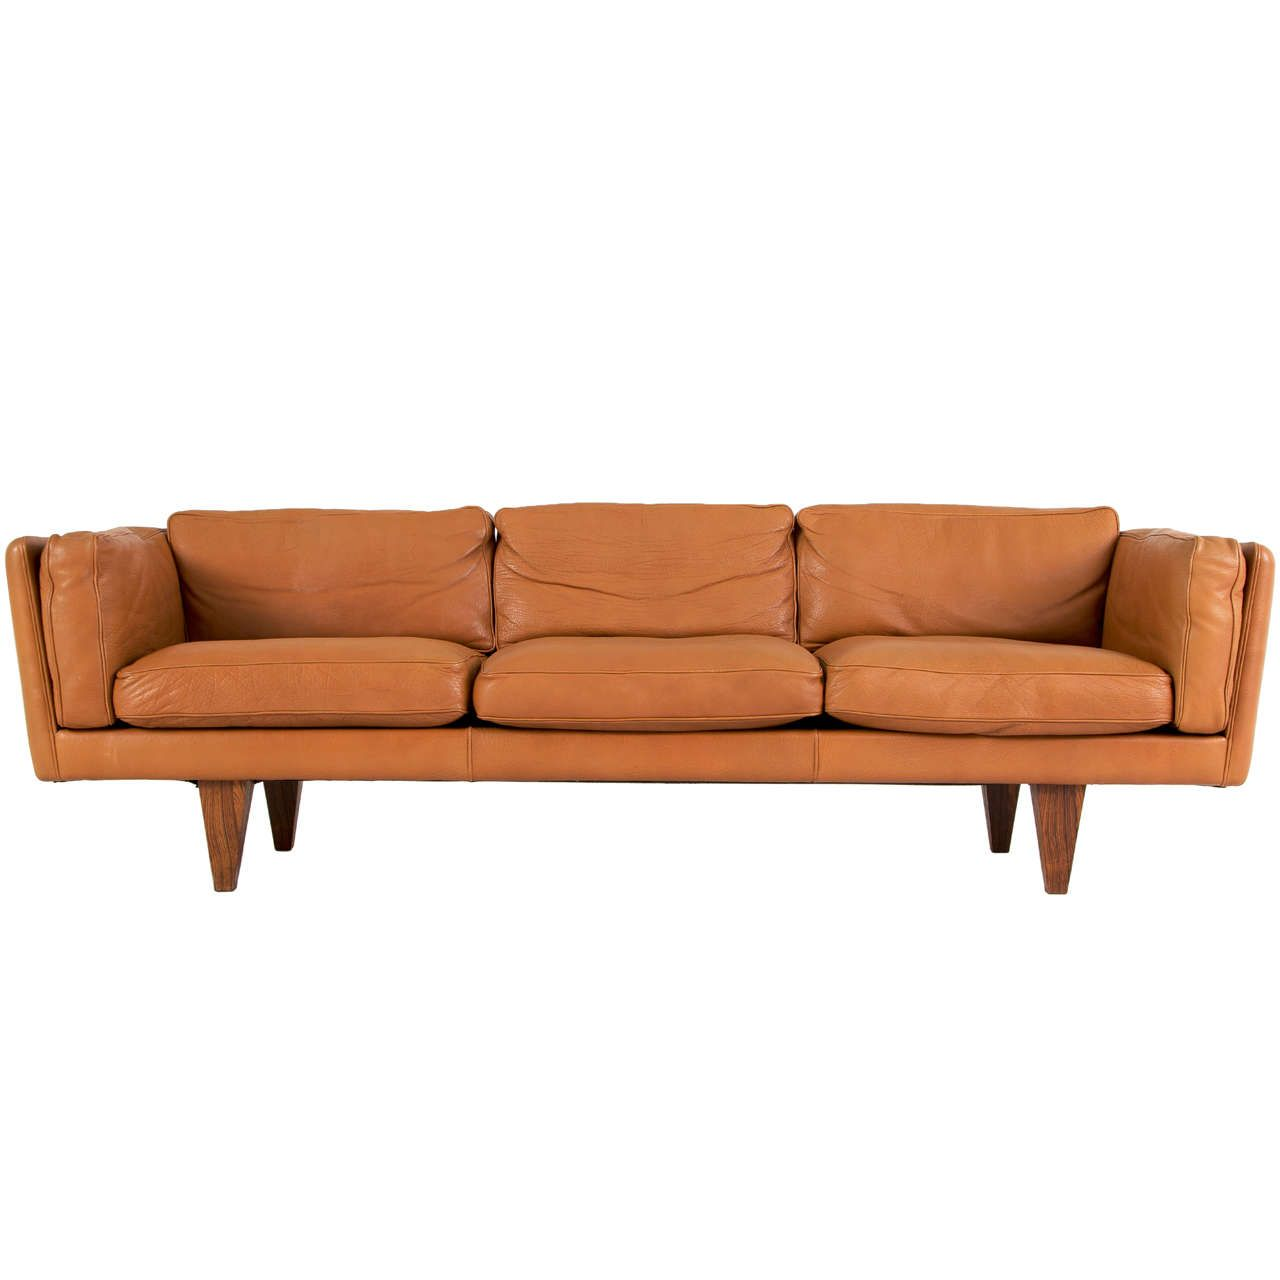 Illum Wikkelso Three Seater Sofa In Cognac Buffalo Leather